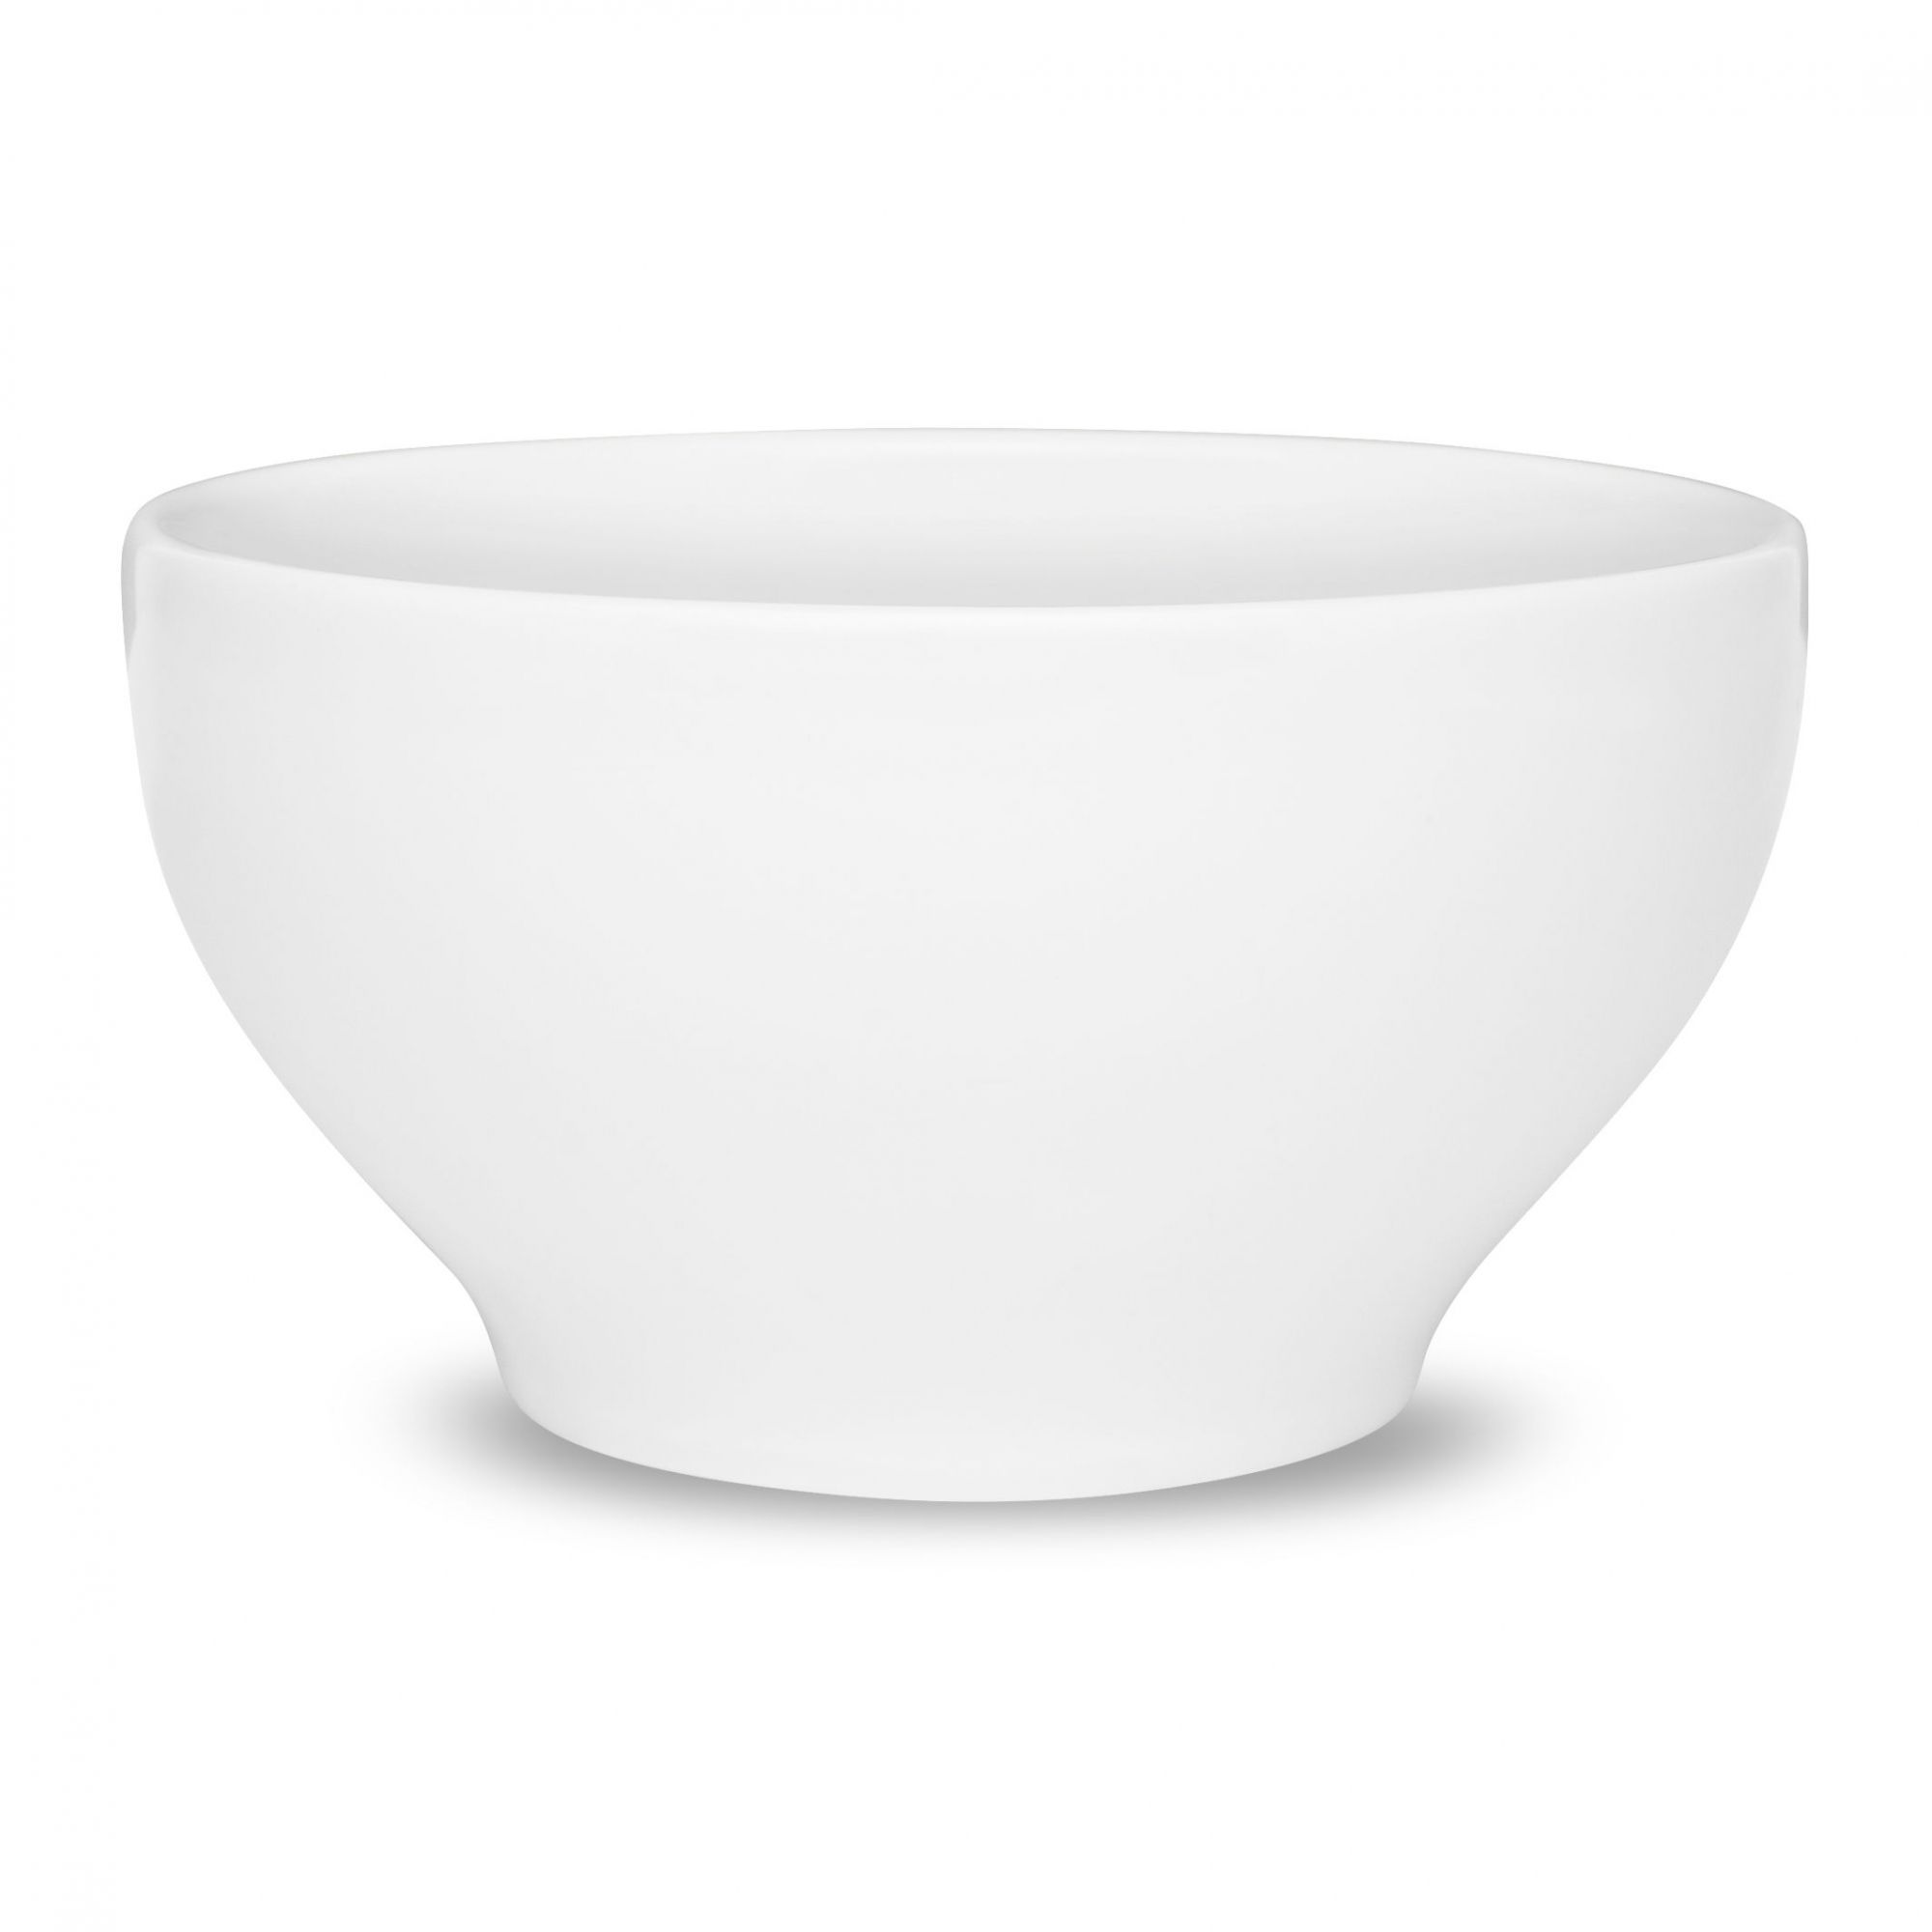 Tigela Cereal Bowl 14,5 cm Branca